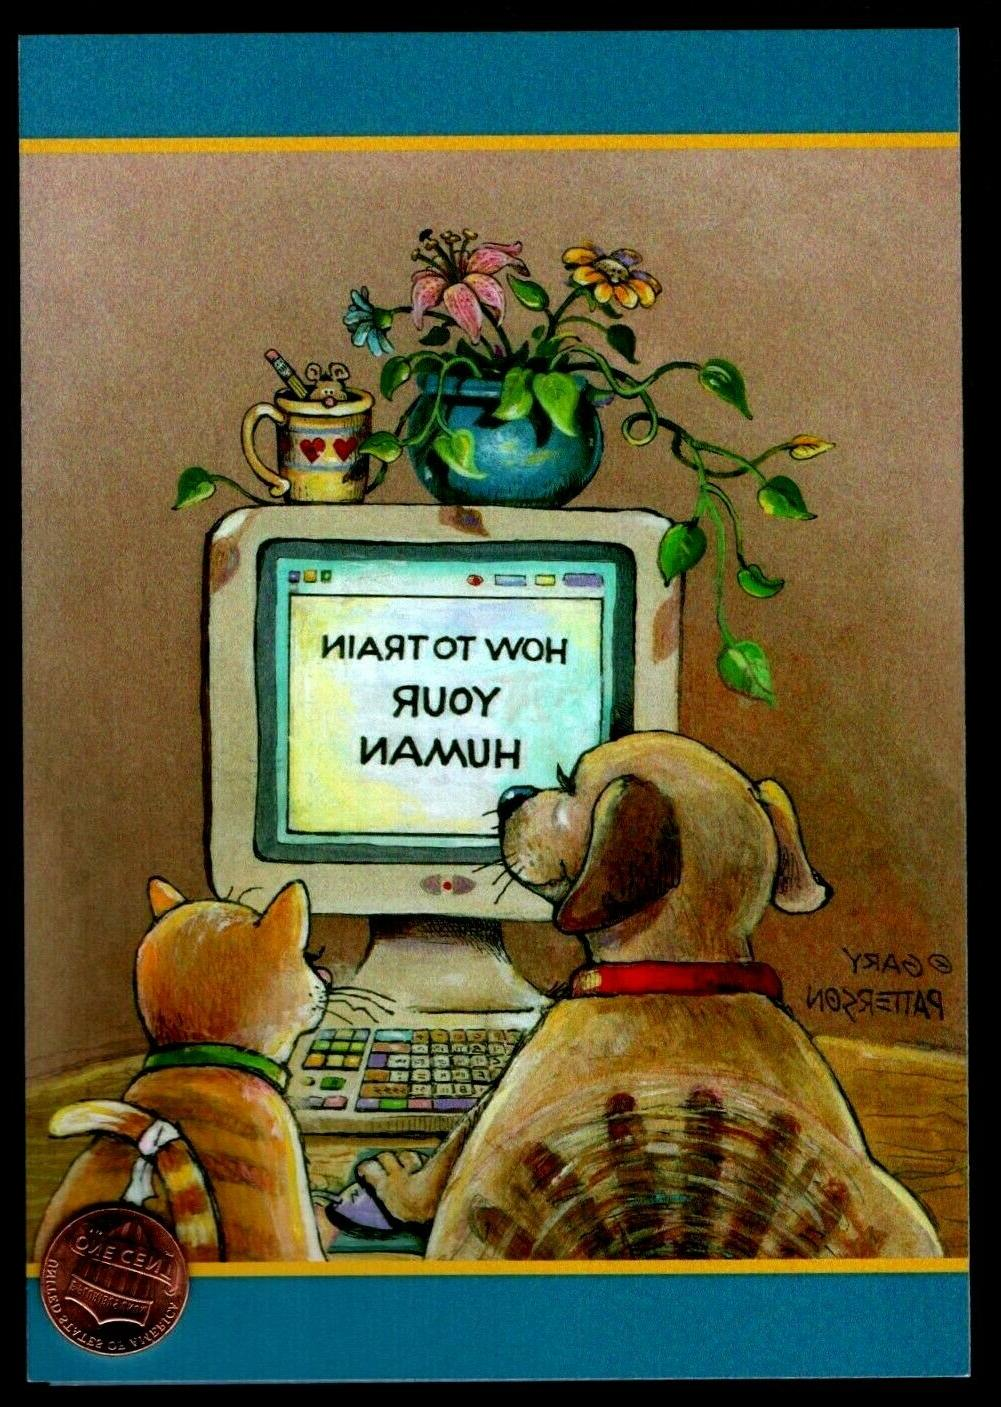 birthday cat and dog computer mouse humorous